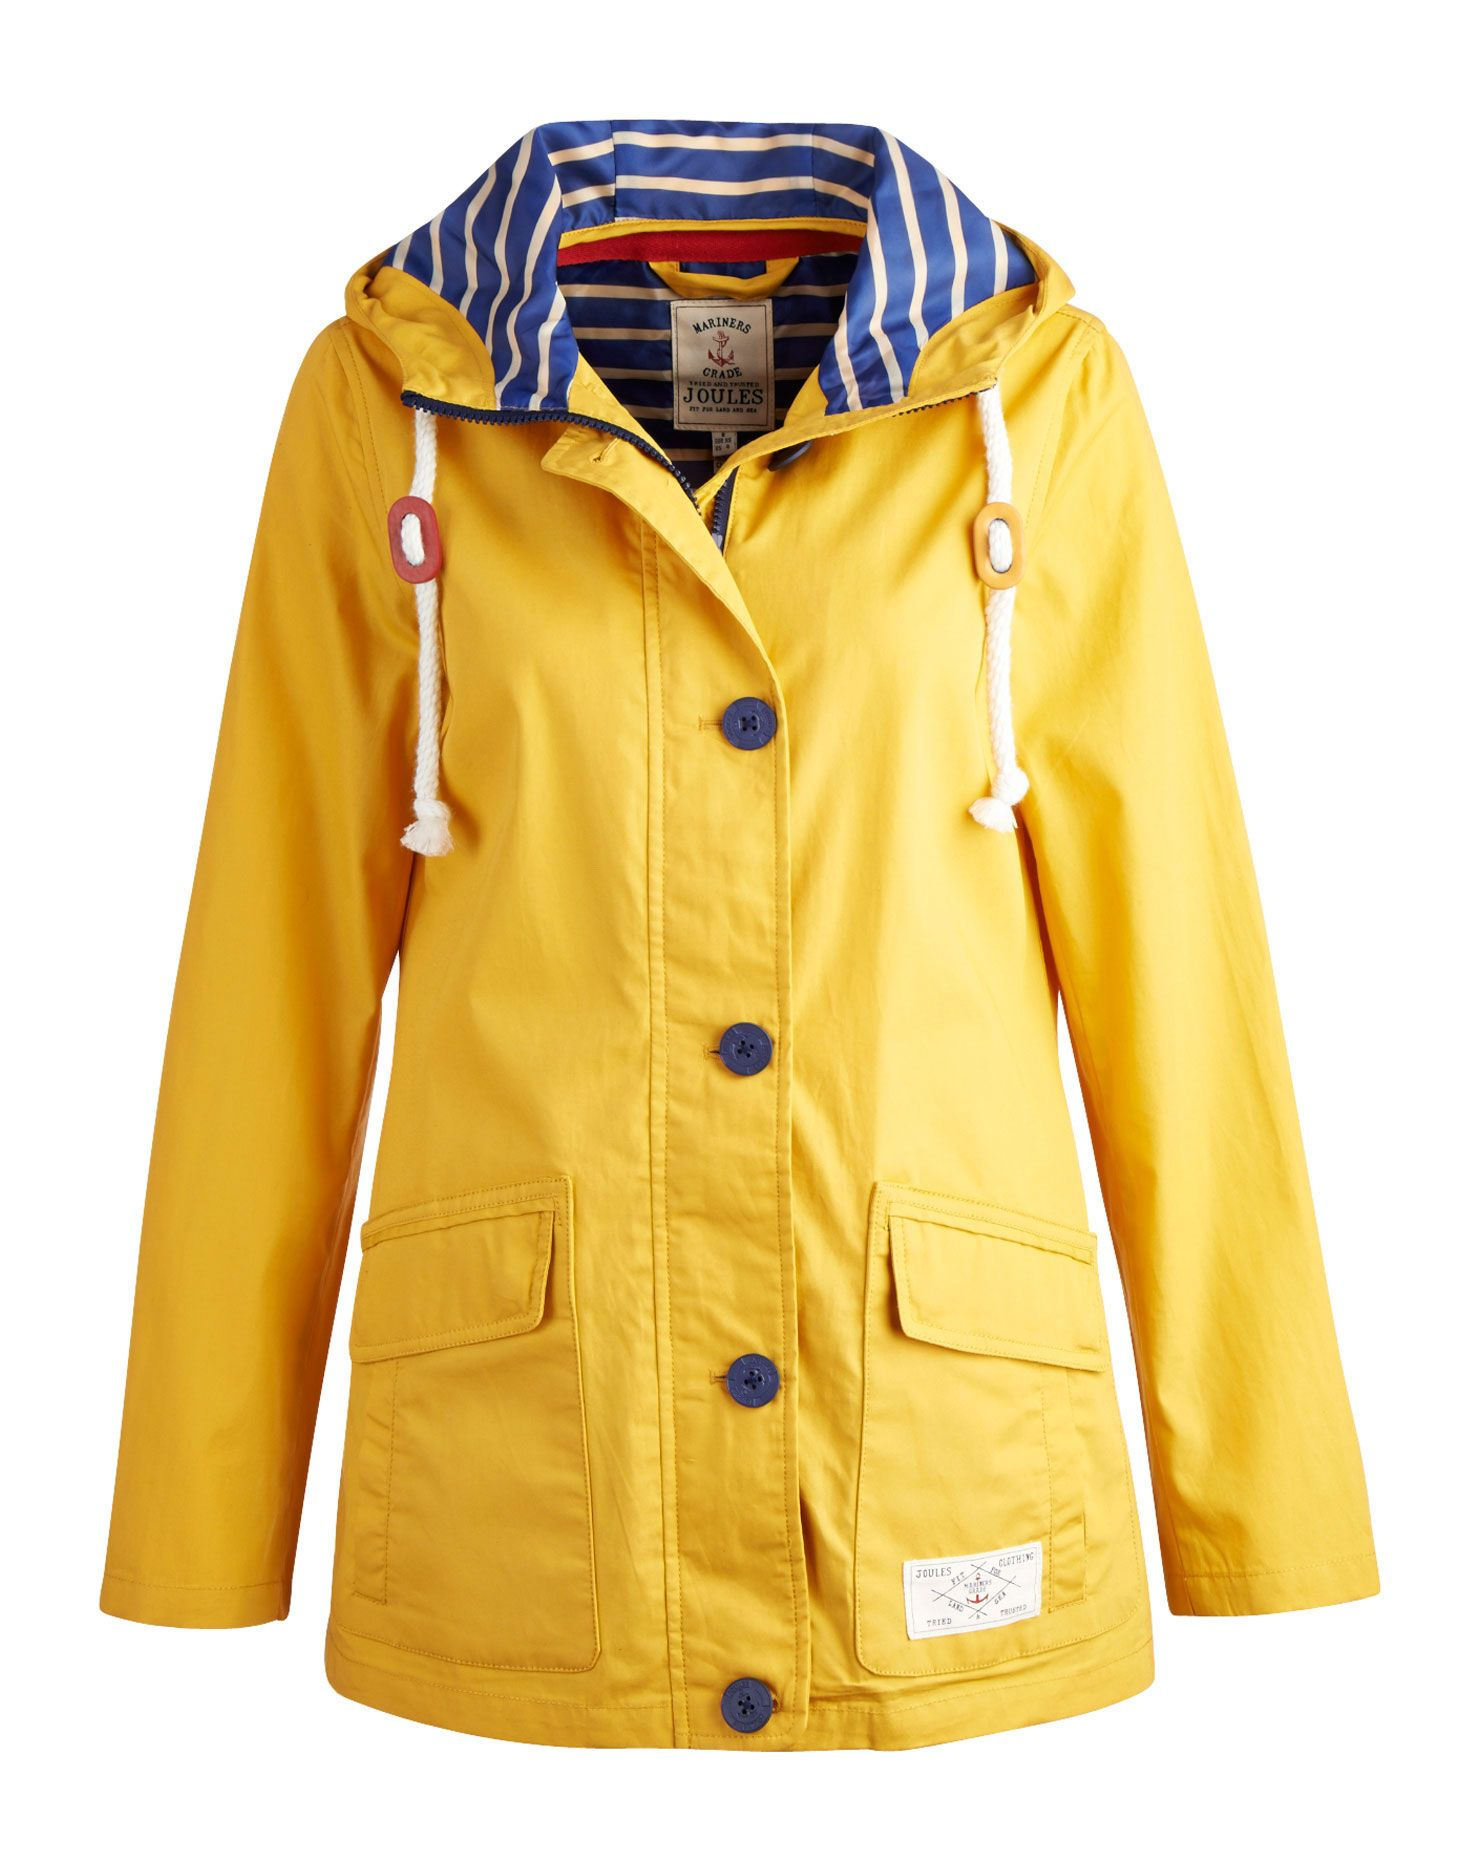 Nautical Jacket | Favorite Style | Pinterest | Raincoat, Clothes ...